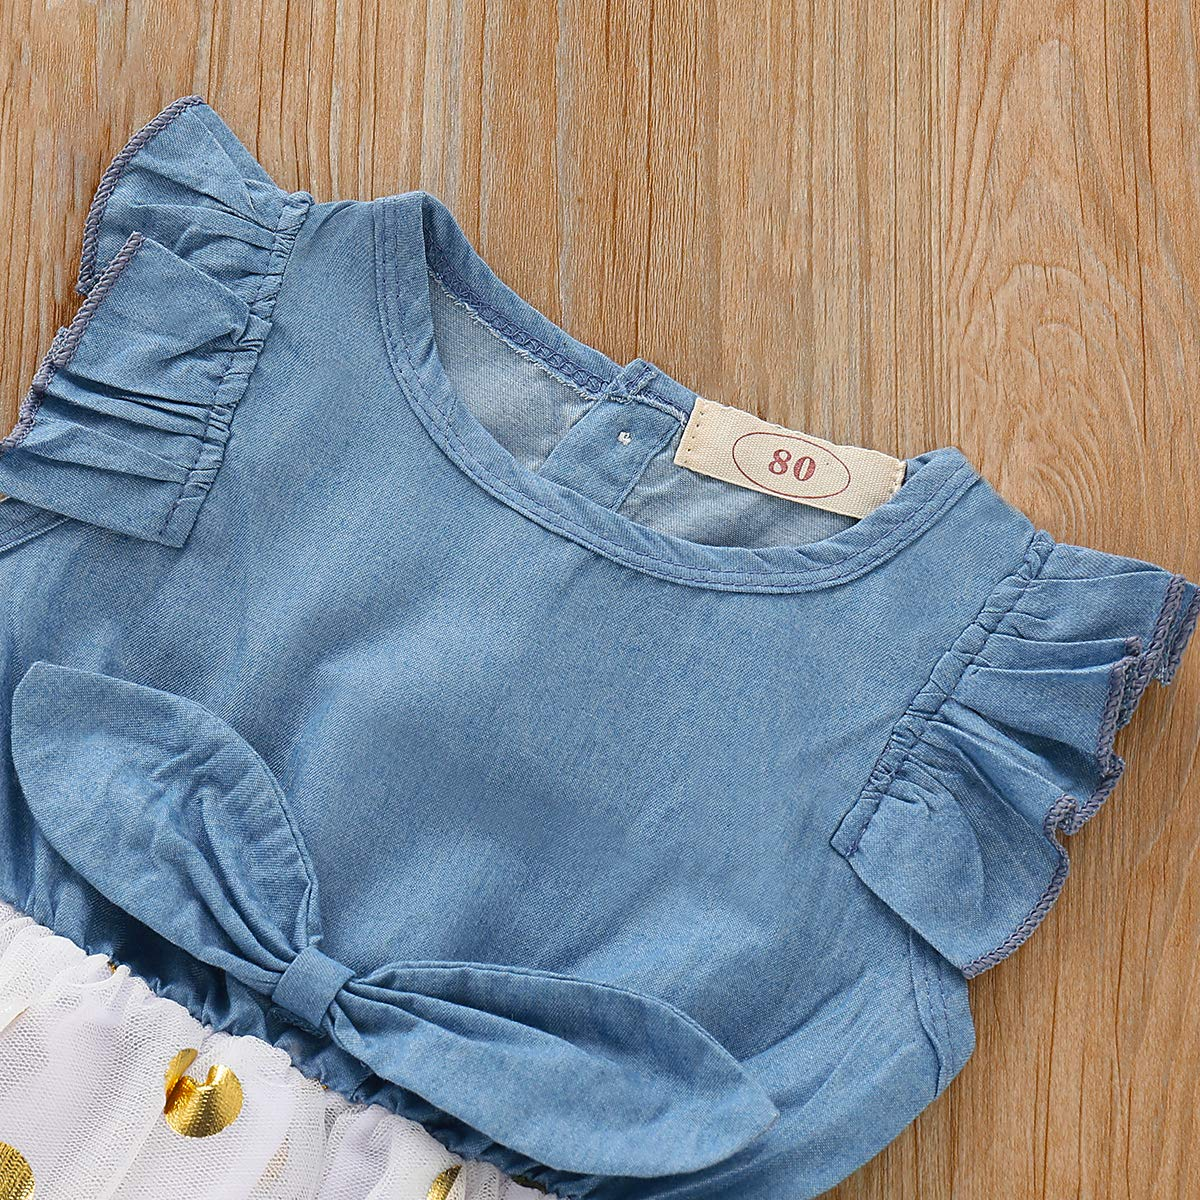 SWNONE Toddler Baby Girl Dress Ruffle Sleeve Denim Jeans White Tulle Tutu Dots Bowknot Princess Wedding Dress Skirt Outfit